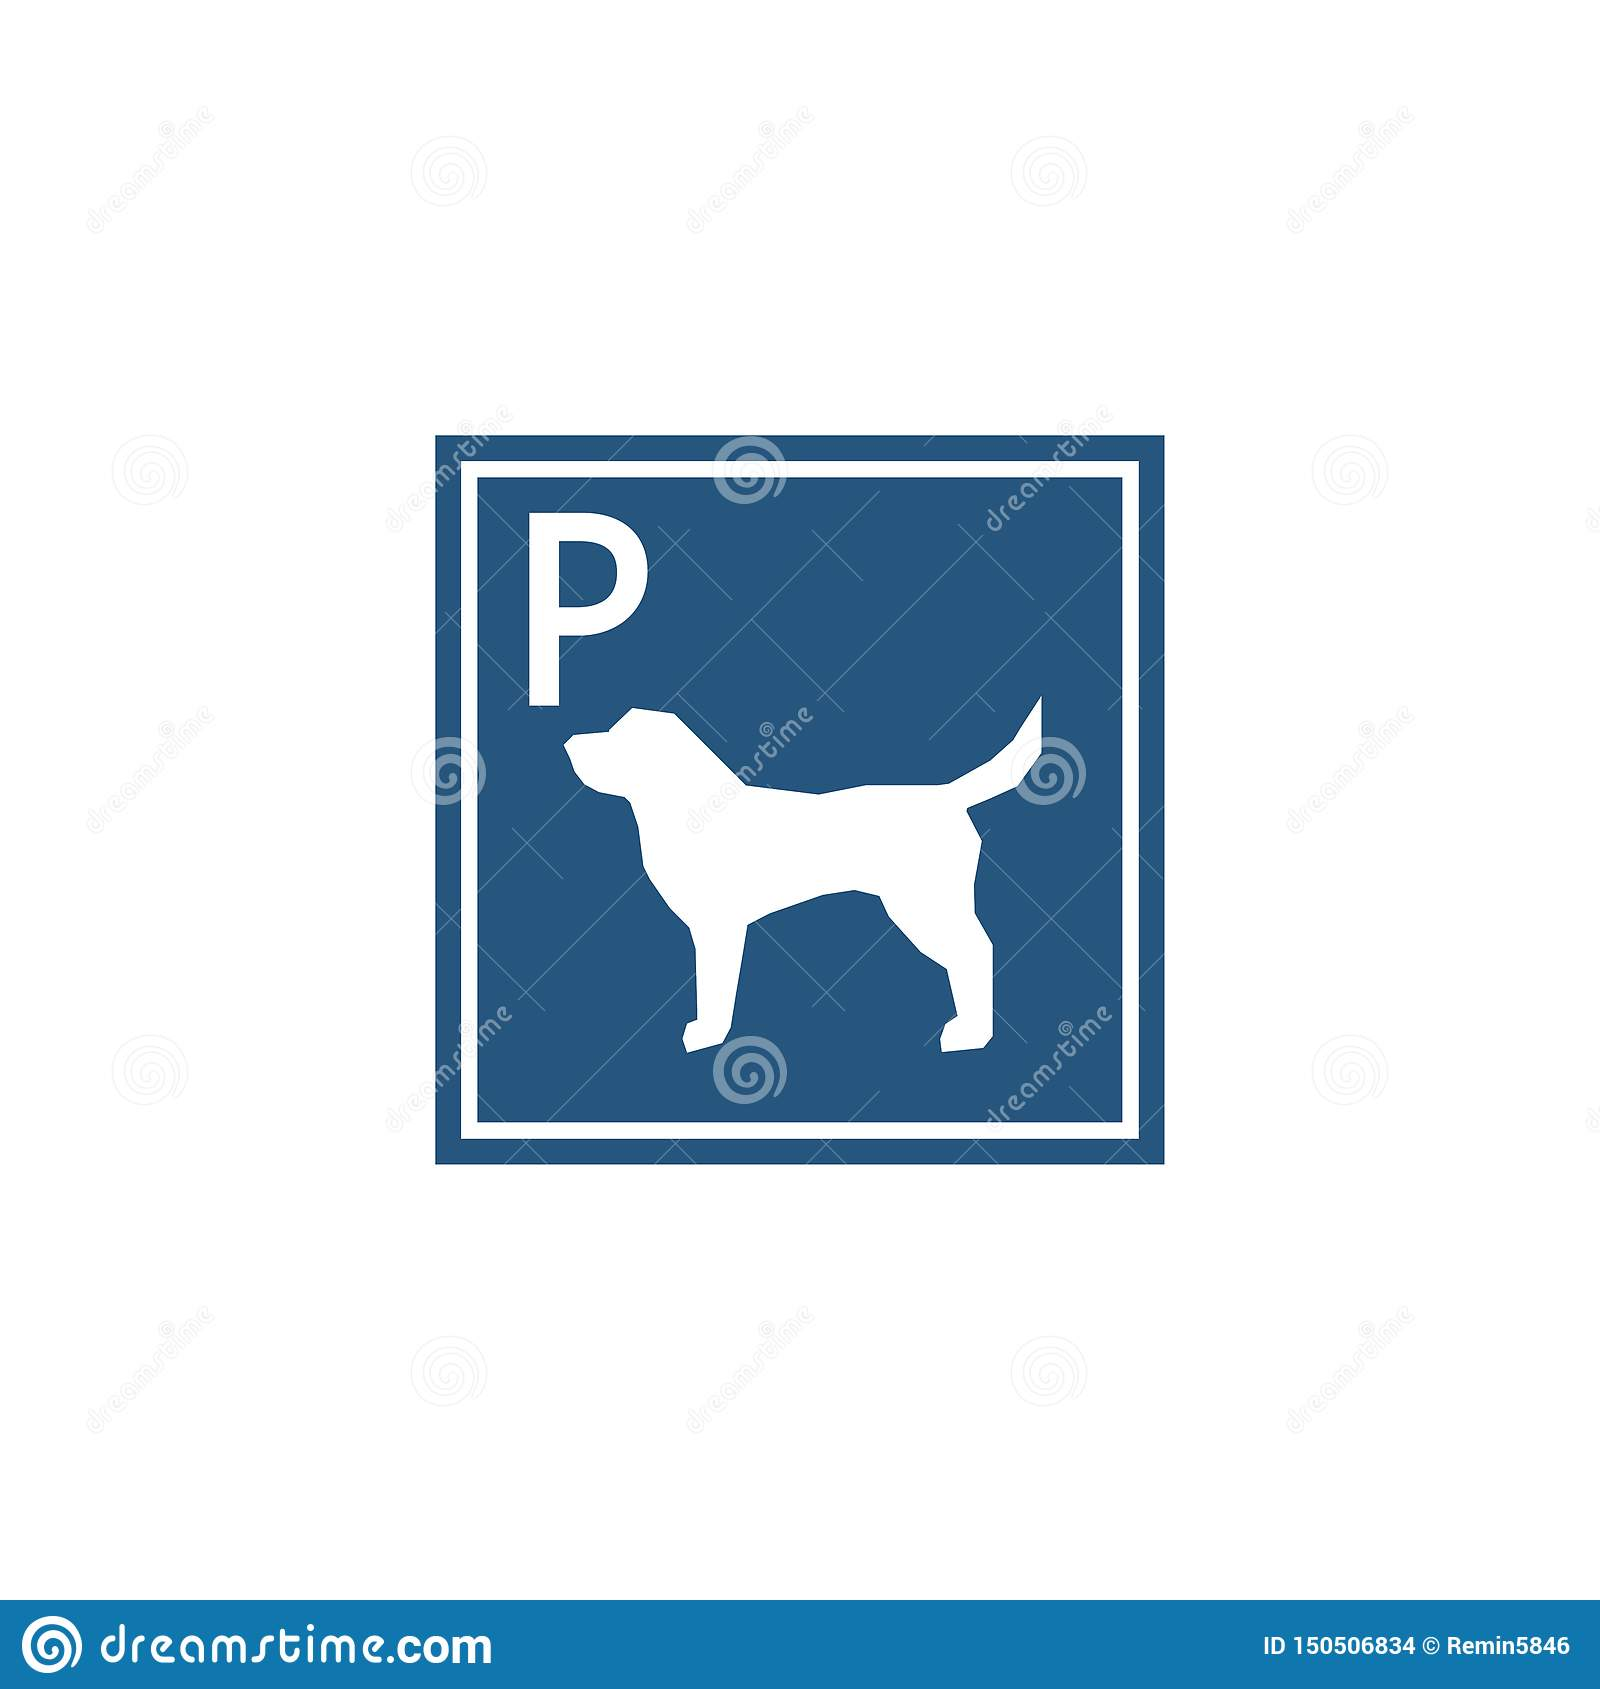 Parking sign for dogs